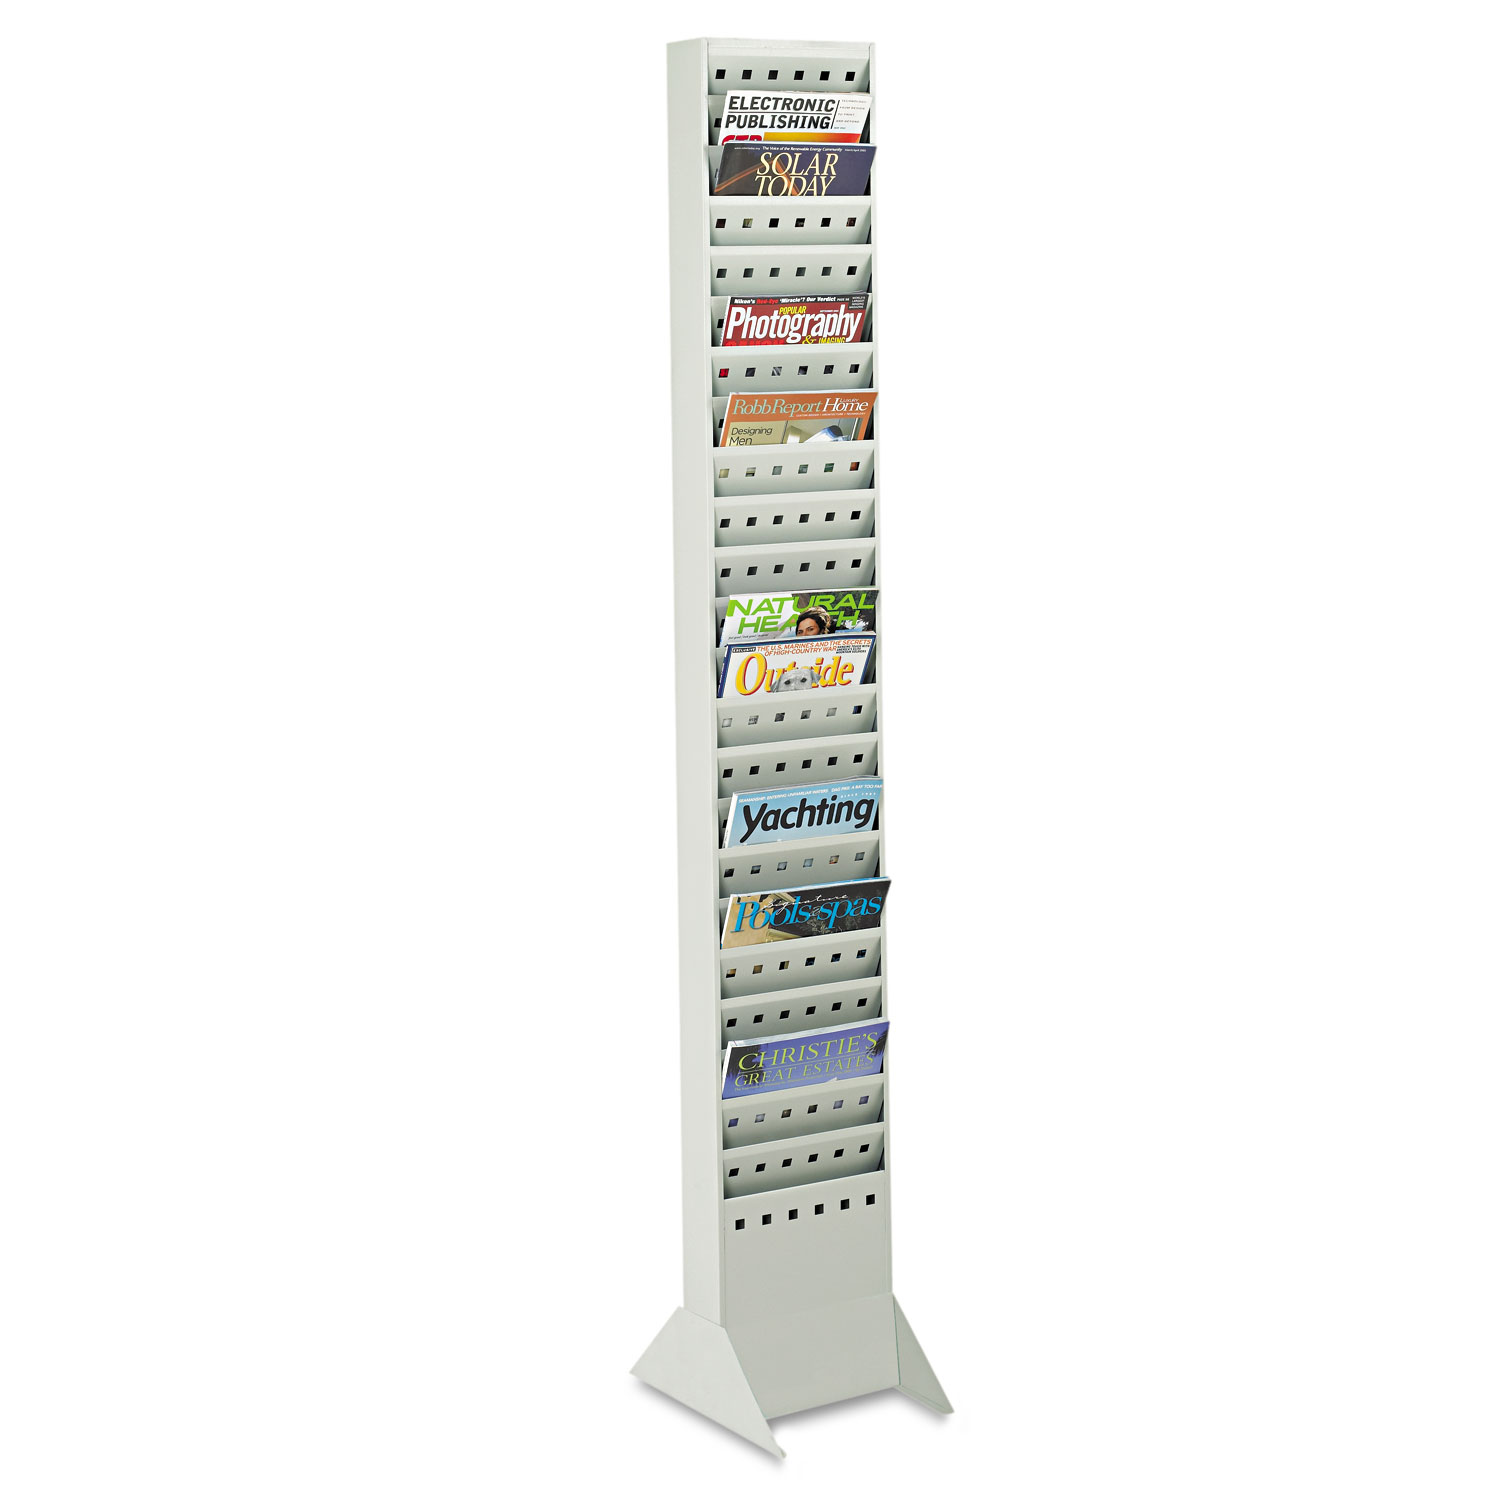 Steel Magazine Rack, 23 Compartments, 10w x 4d x 65.5h, Gray